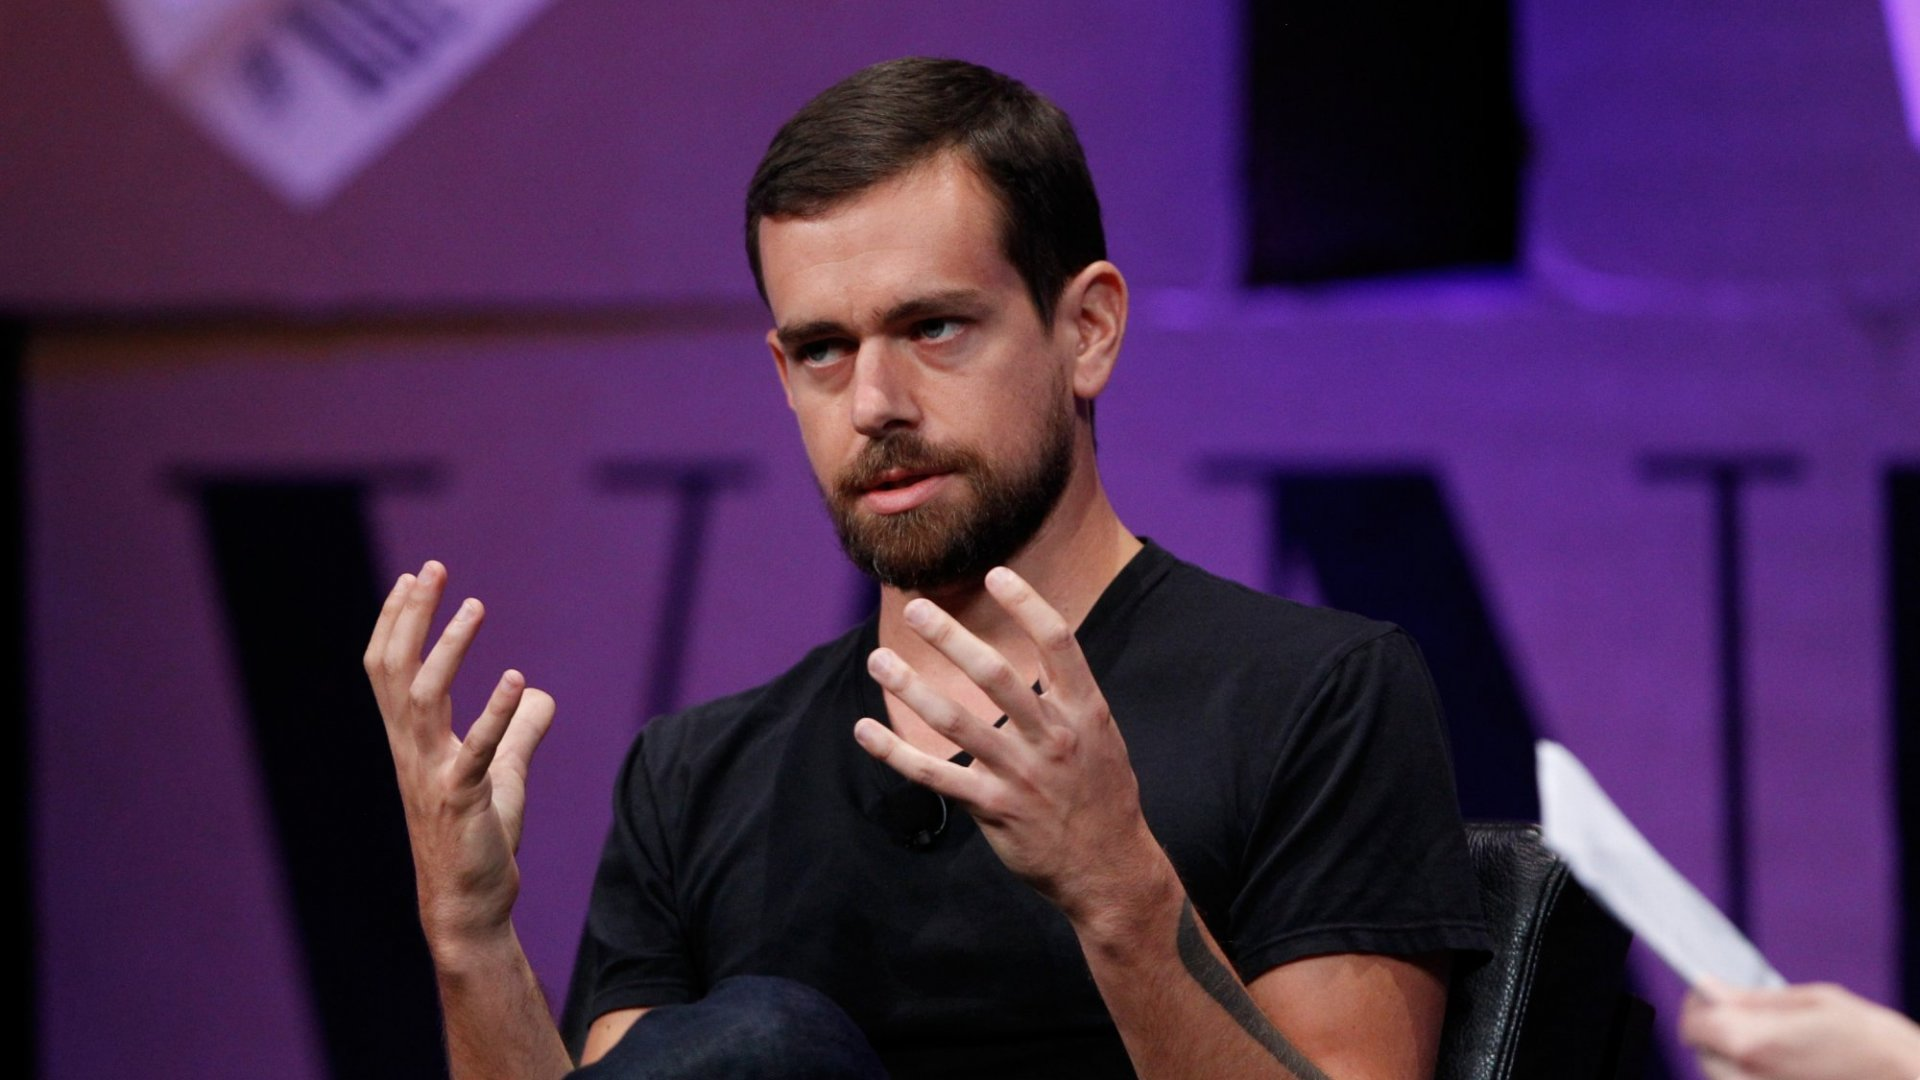 Twitter Is Betting Big on Live Streaming, but Investors Are Losing Patience